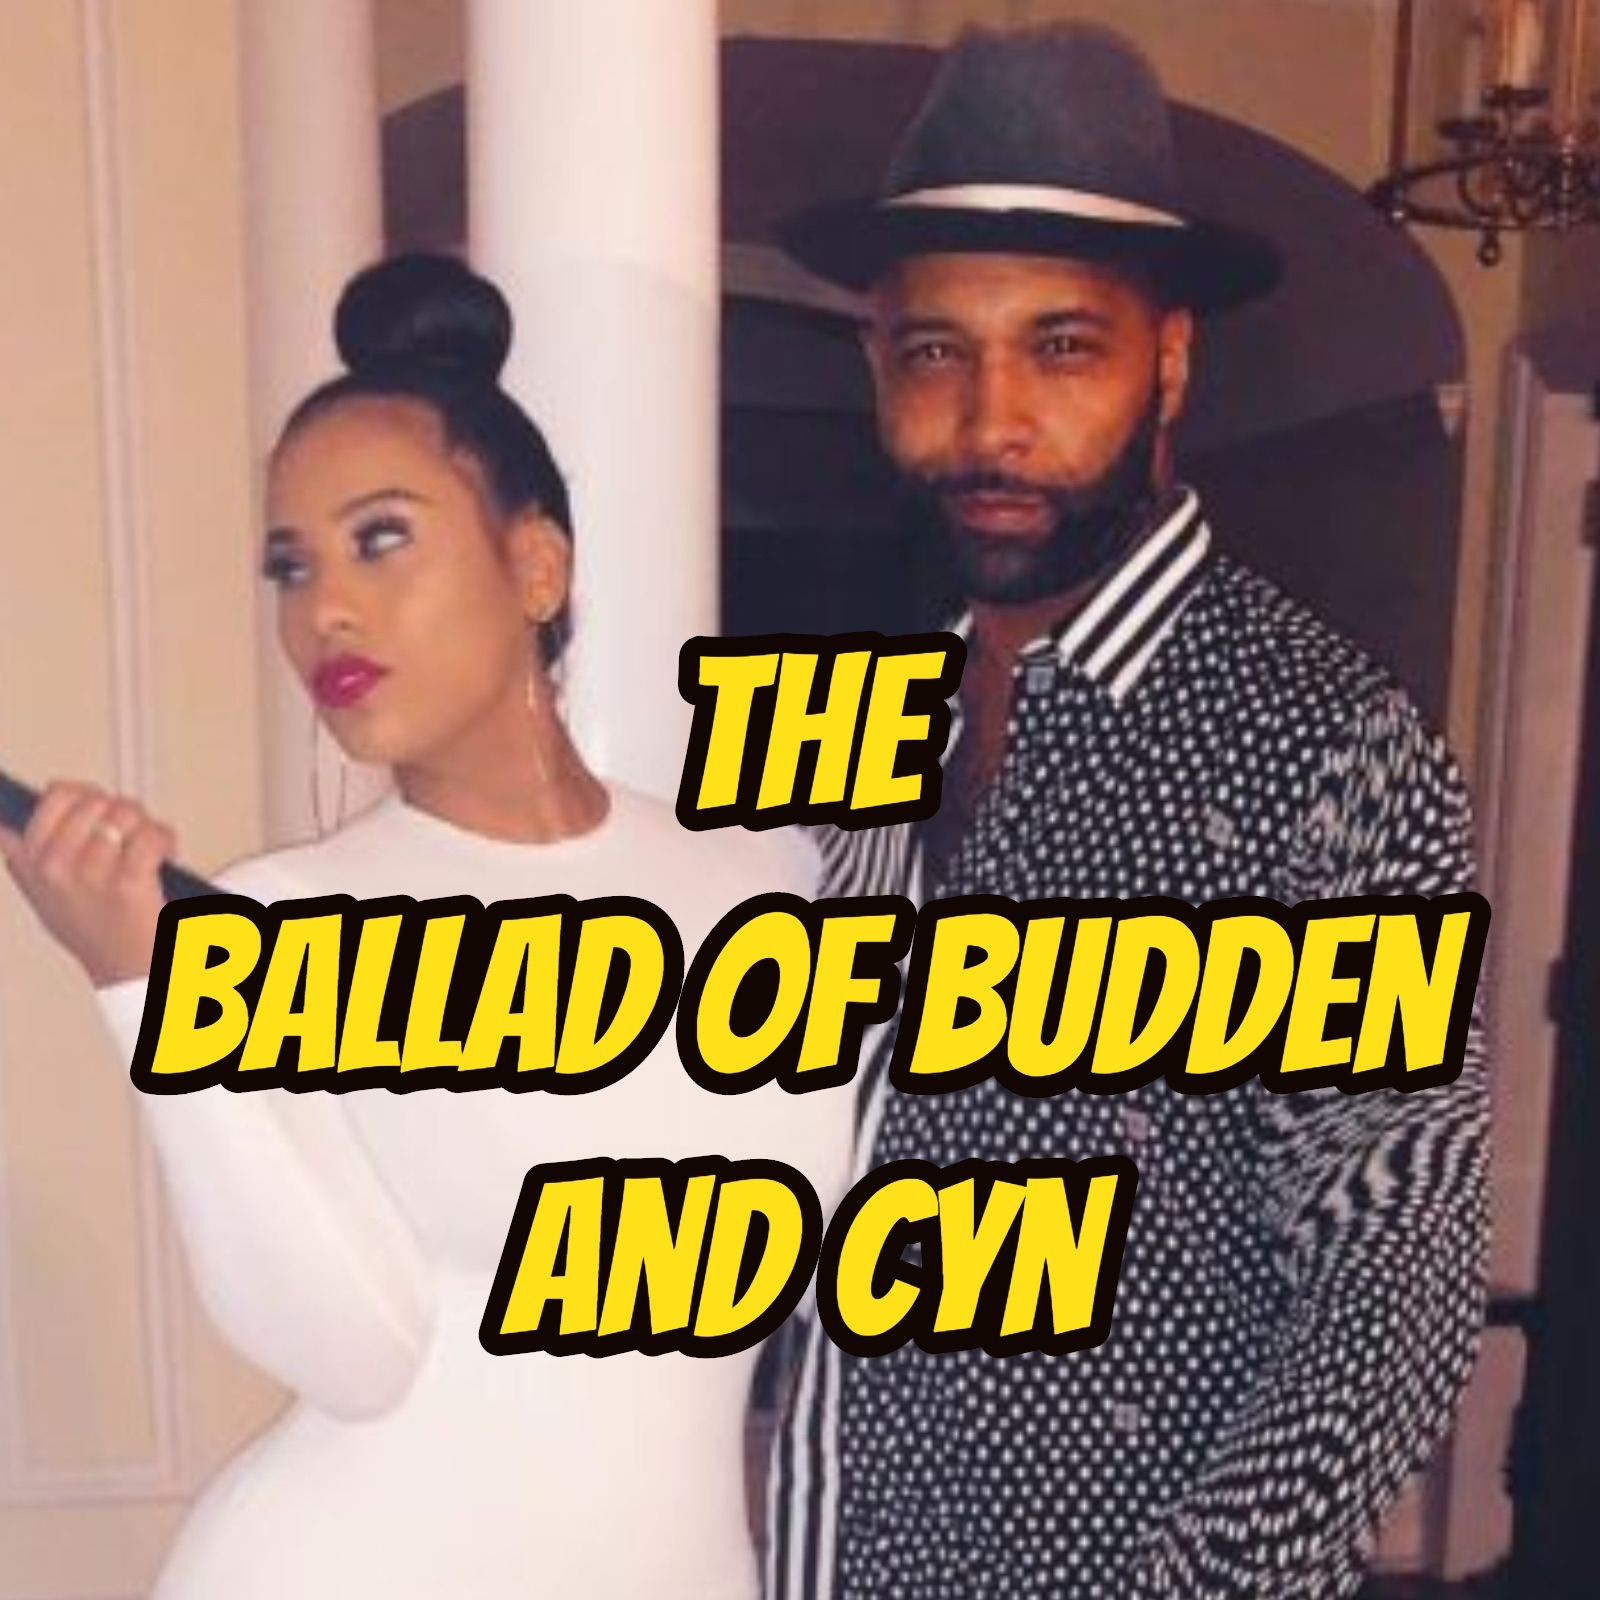 The Ballad of Budden and Cyn & Preview to Episode 142